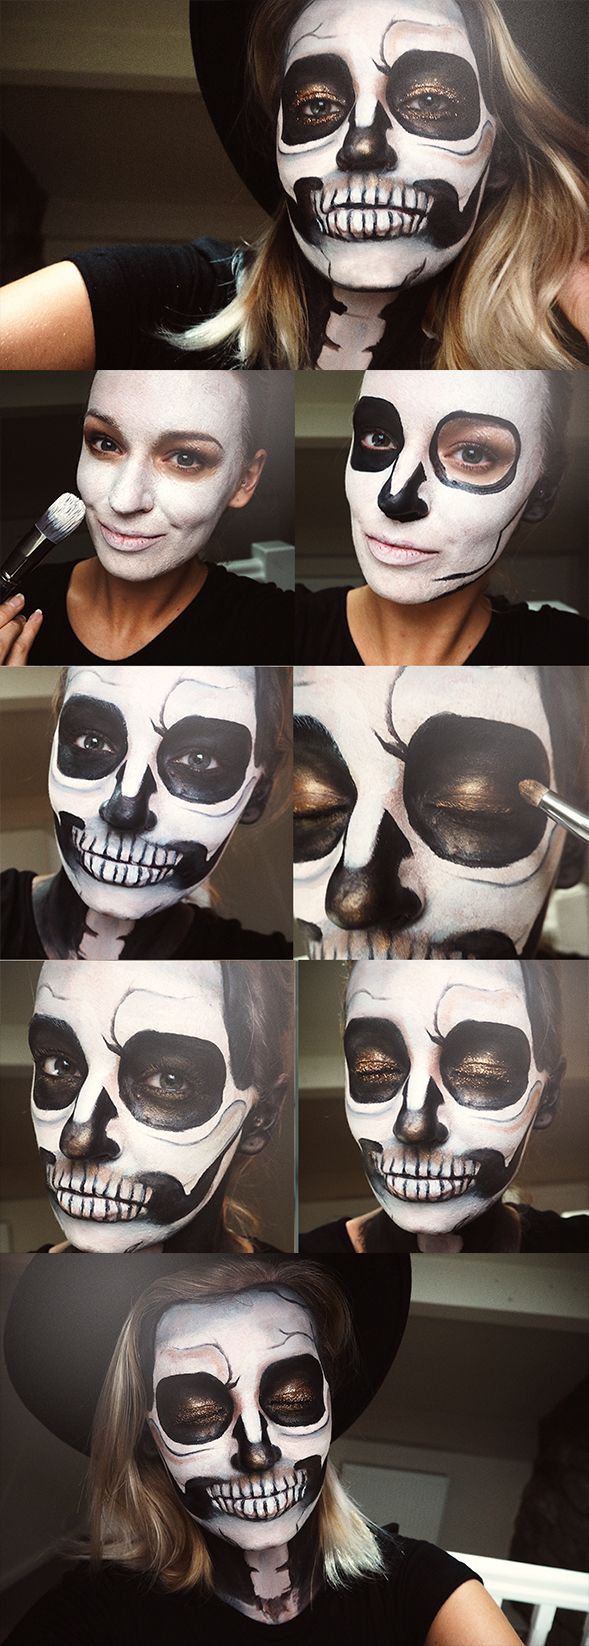 Glitter Skull Halloween Makeup - Tap the Link Now to Shop Hair Products, Beauty Products and Kitchen Gadgets Online at Great Savings and Free Shipping!! https://getit-4me.com/